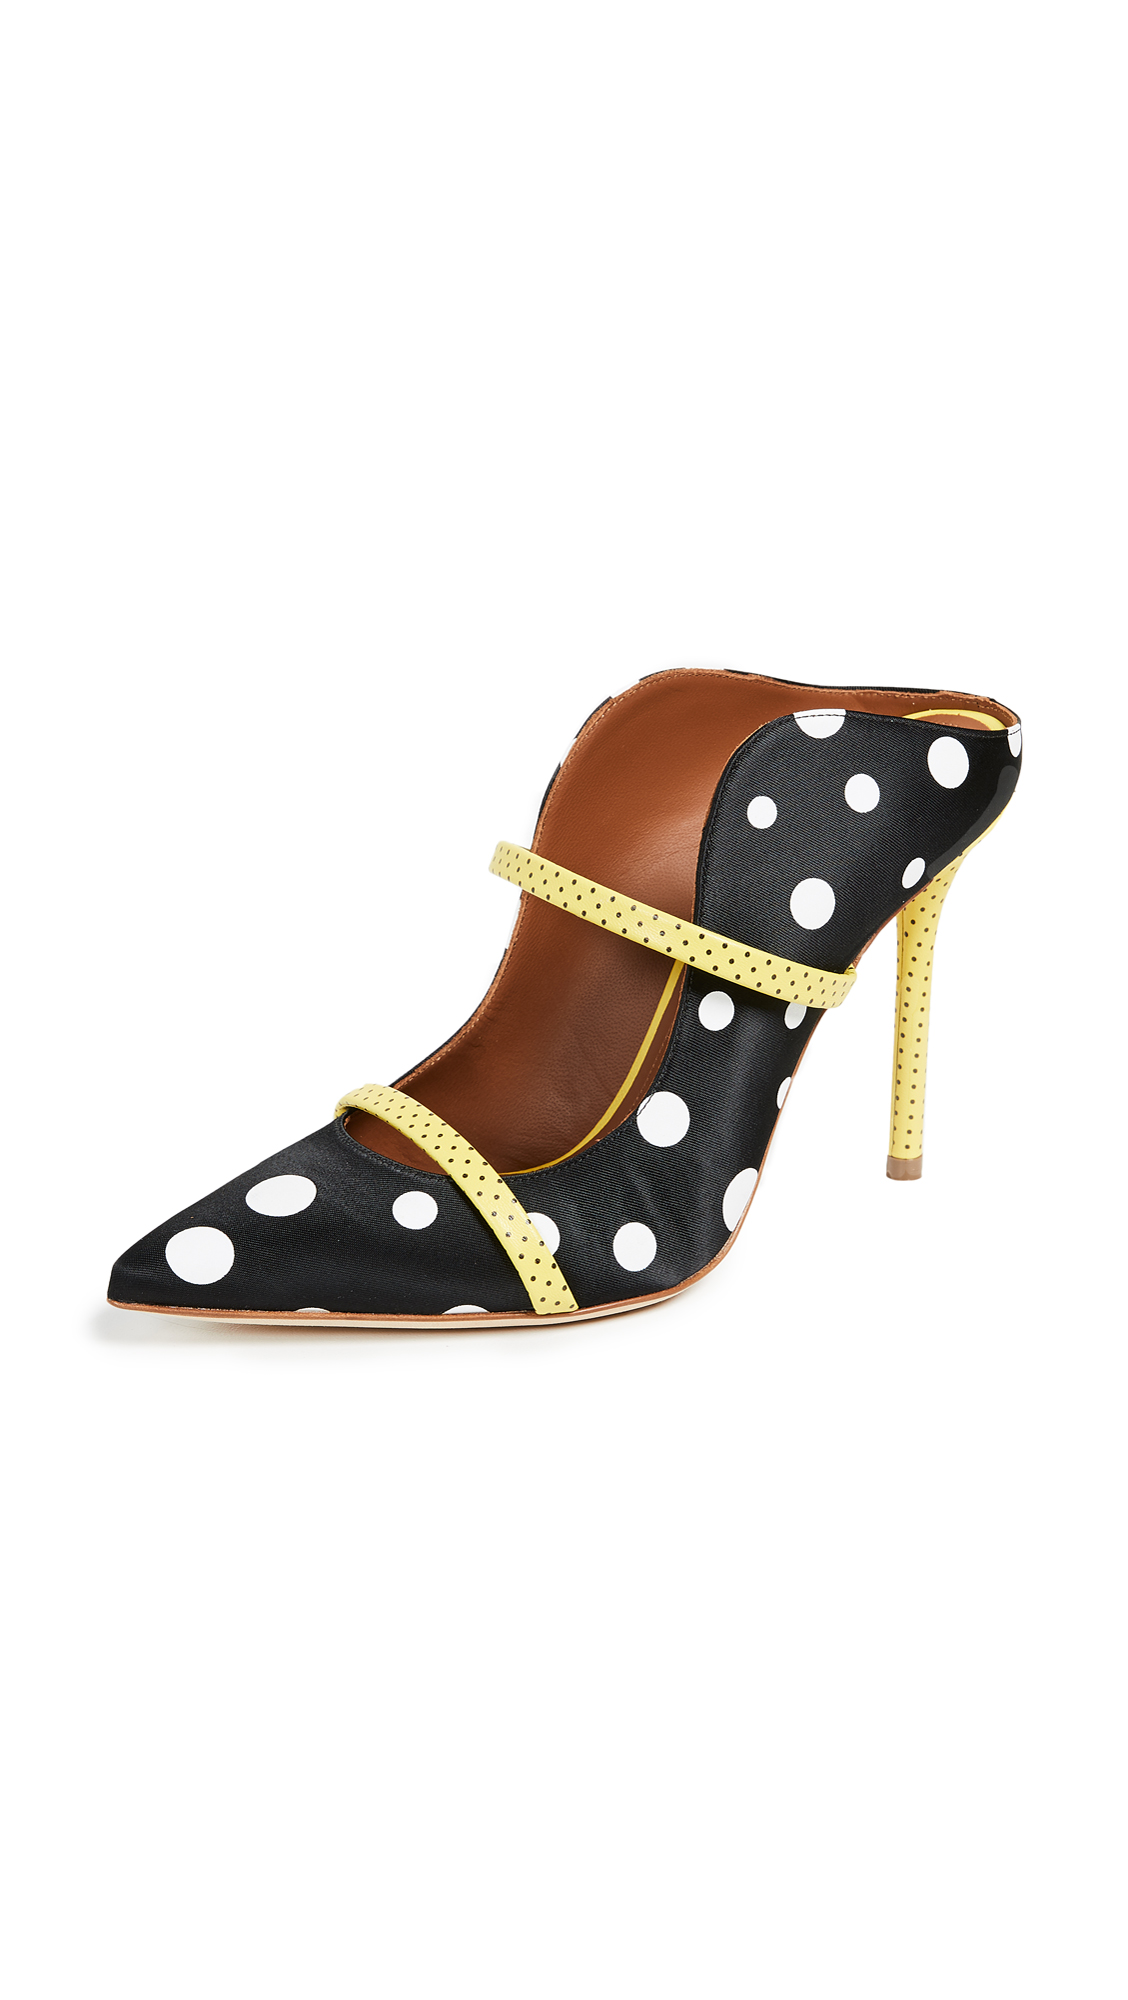 Malone Souliers Maureen Ungaro Mules - Black/White Dots/Yellow Dots